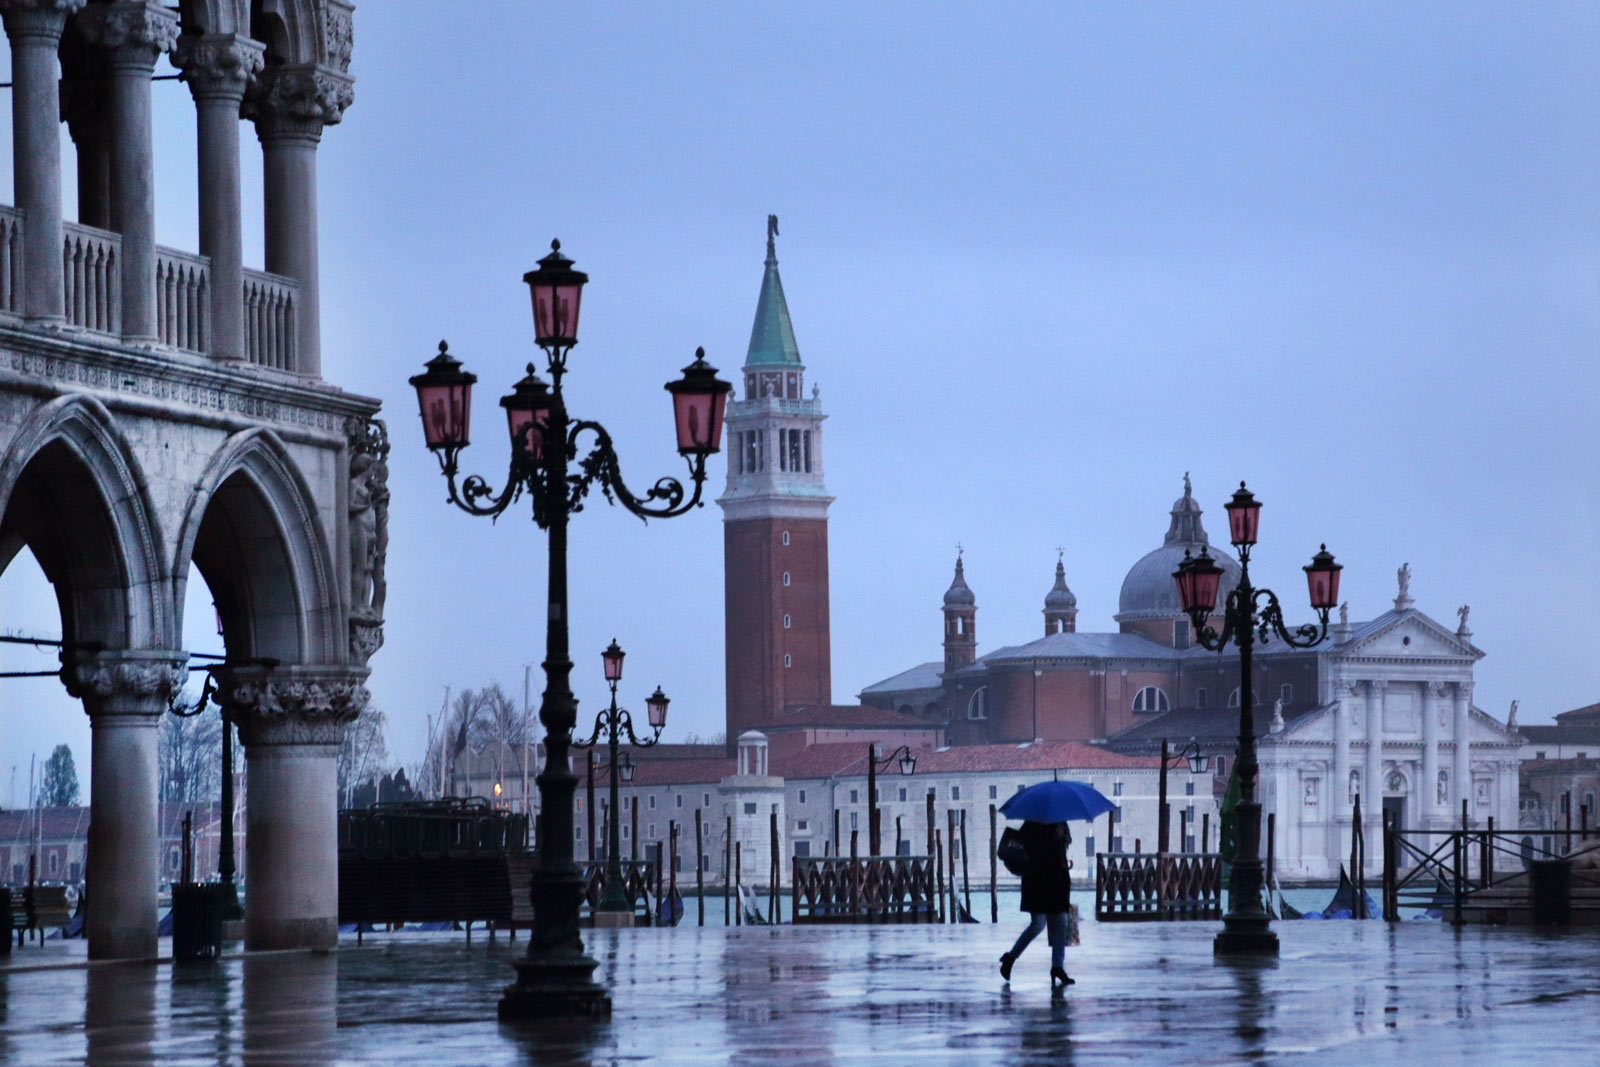 Venice Lady by Christophe Jacrot